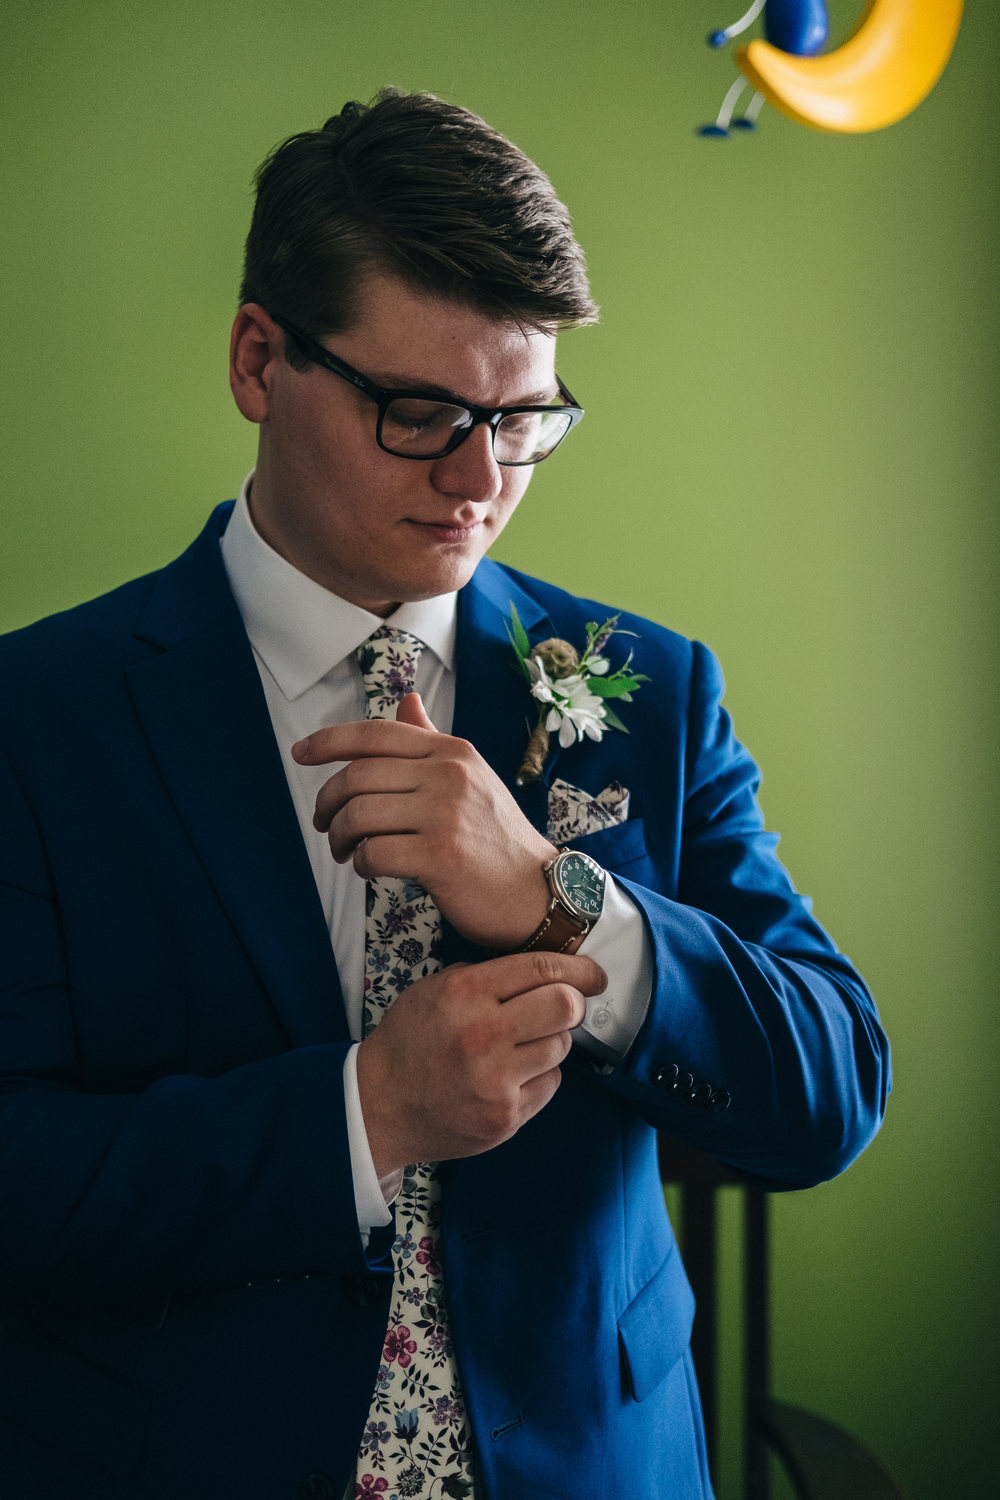 Groom in jet blue suit with Shinola watch